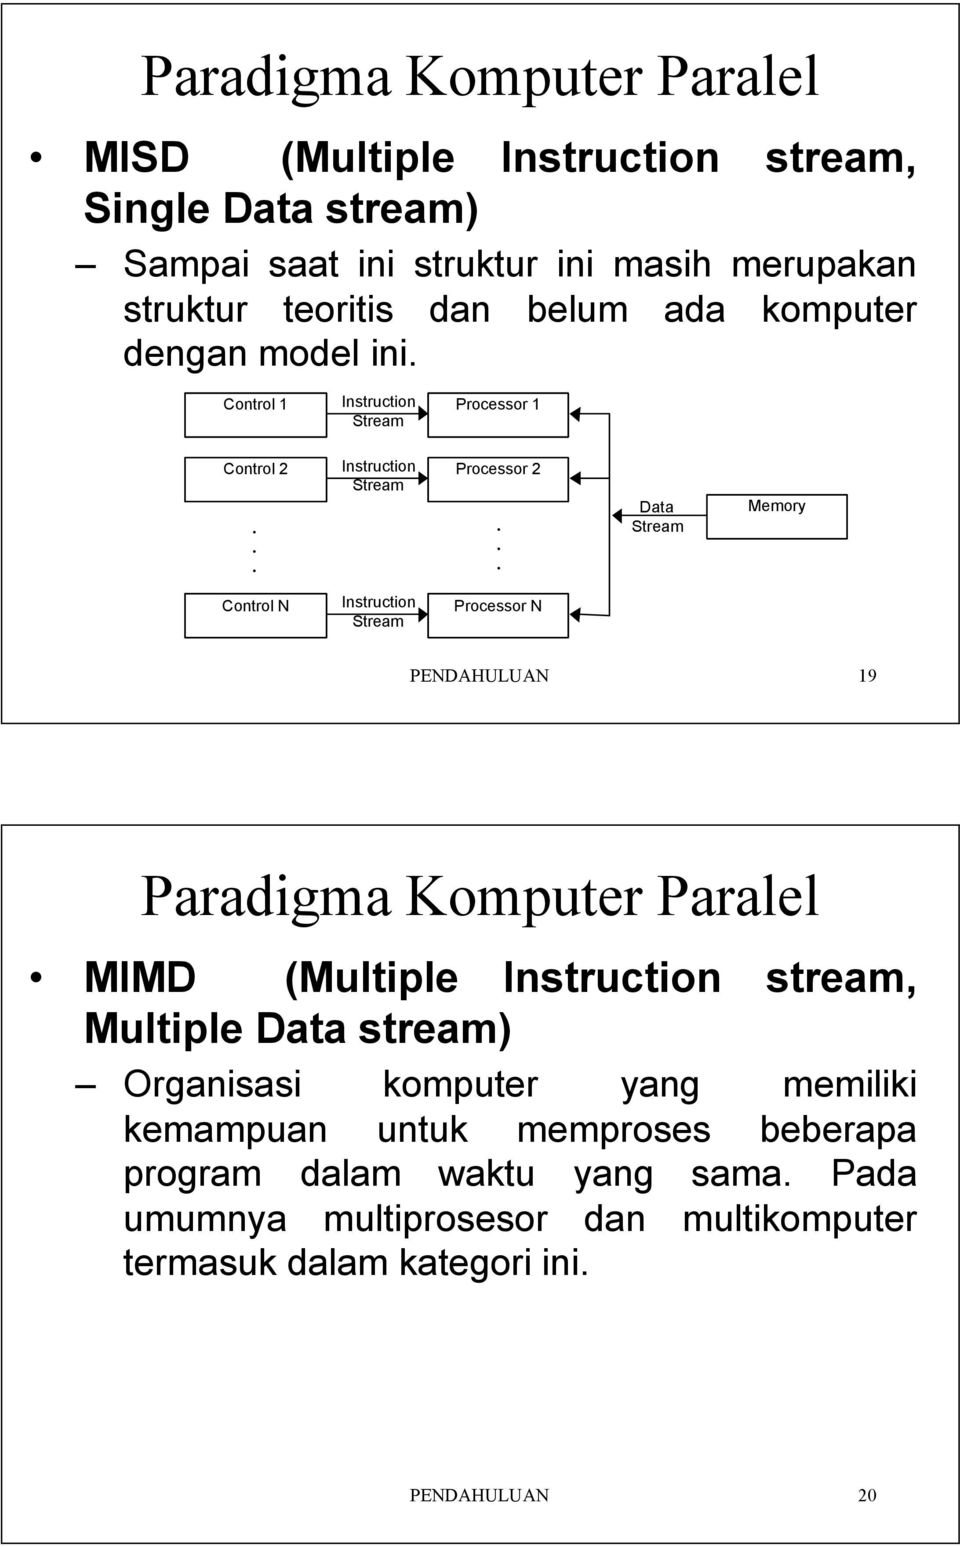 Processor N PENDAHULUAN 19 Paradigma Komputer Paralel MIMD (Multiple Instruction stream, Multiple stream) Organisasi komputer yang memiliki